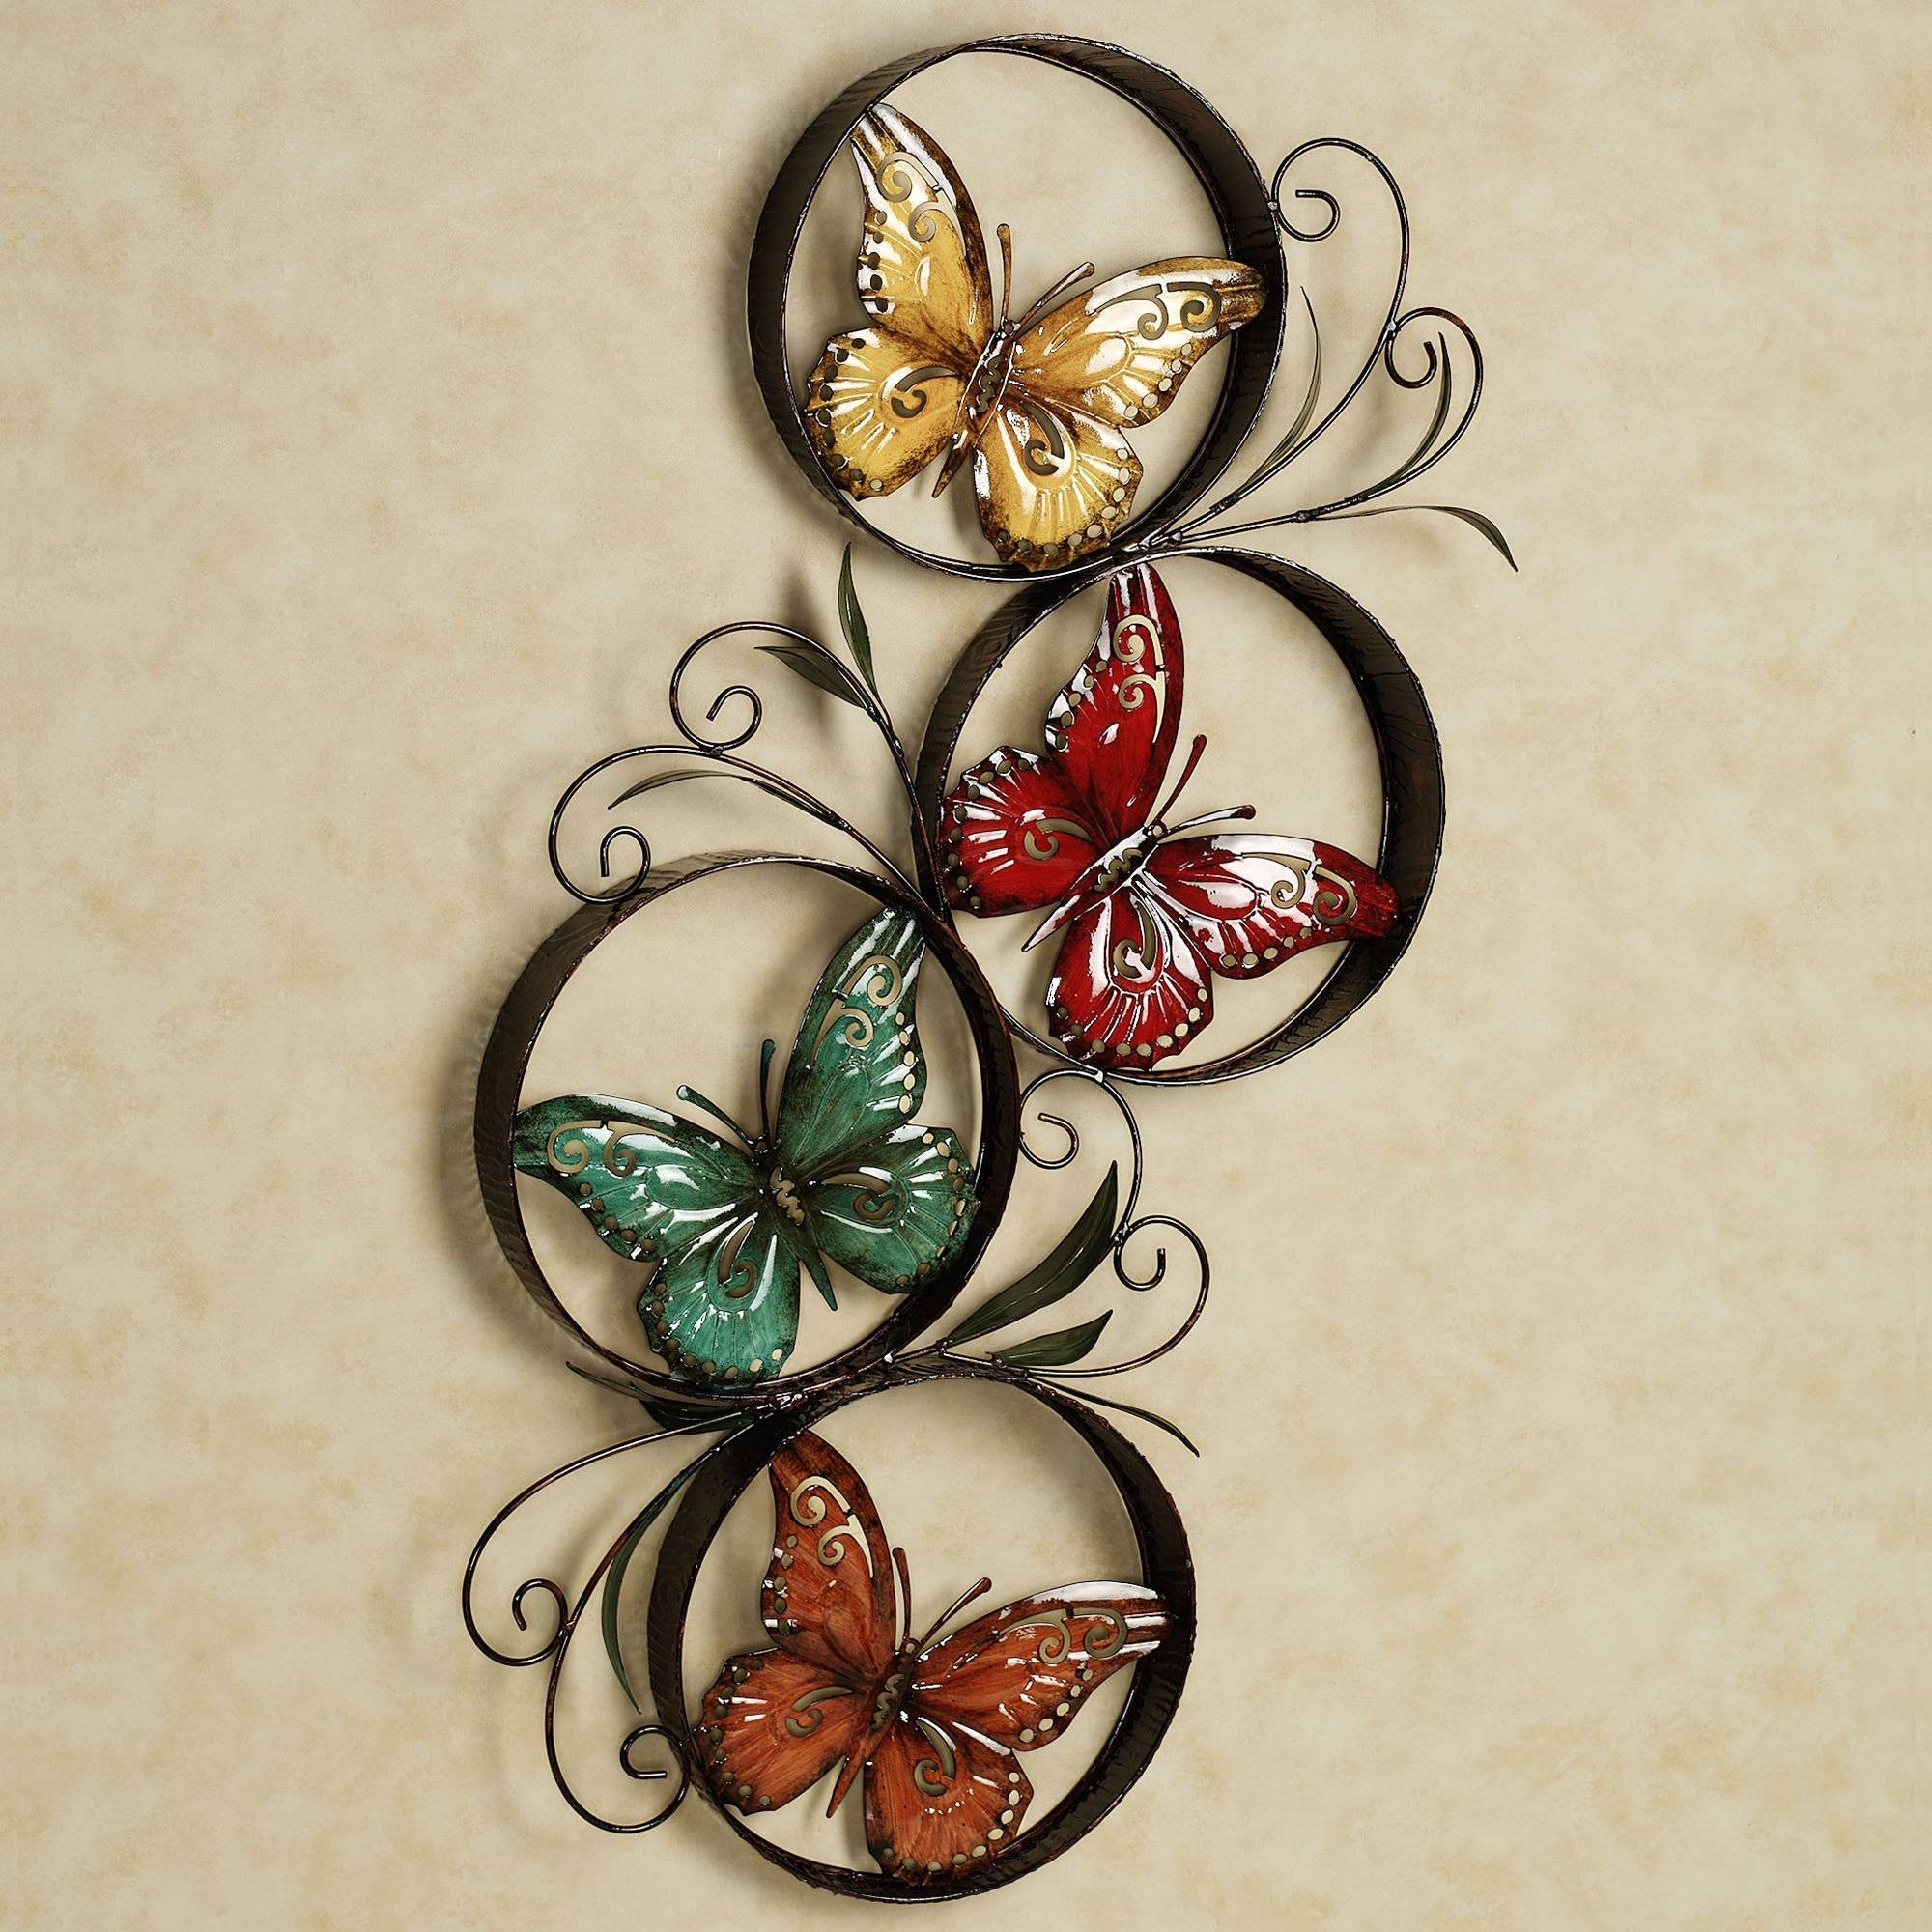 Butterfly Jubilee Metal Wall Art – Clip Art Library In Most Up To Date Butterfly Metal Wall Art (View 17 of 20)